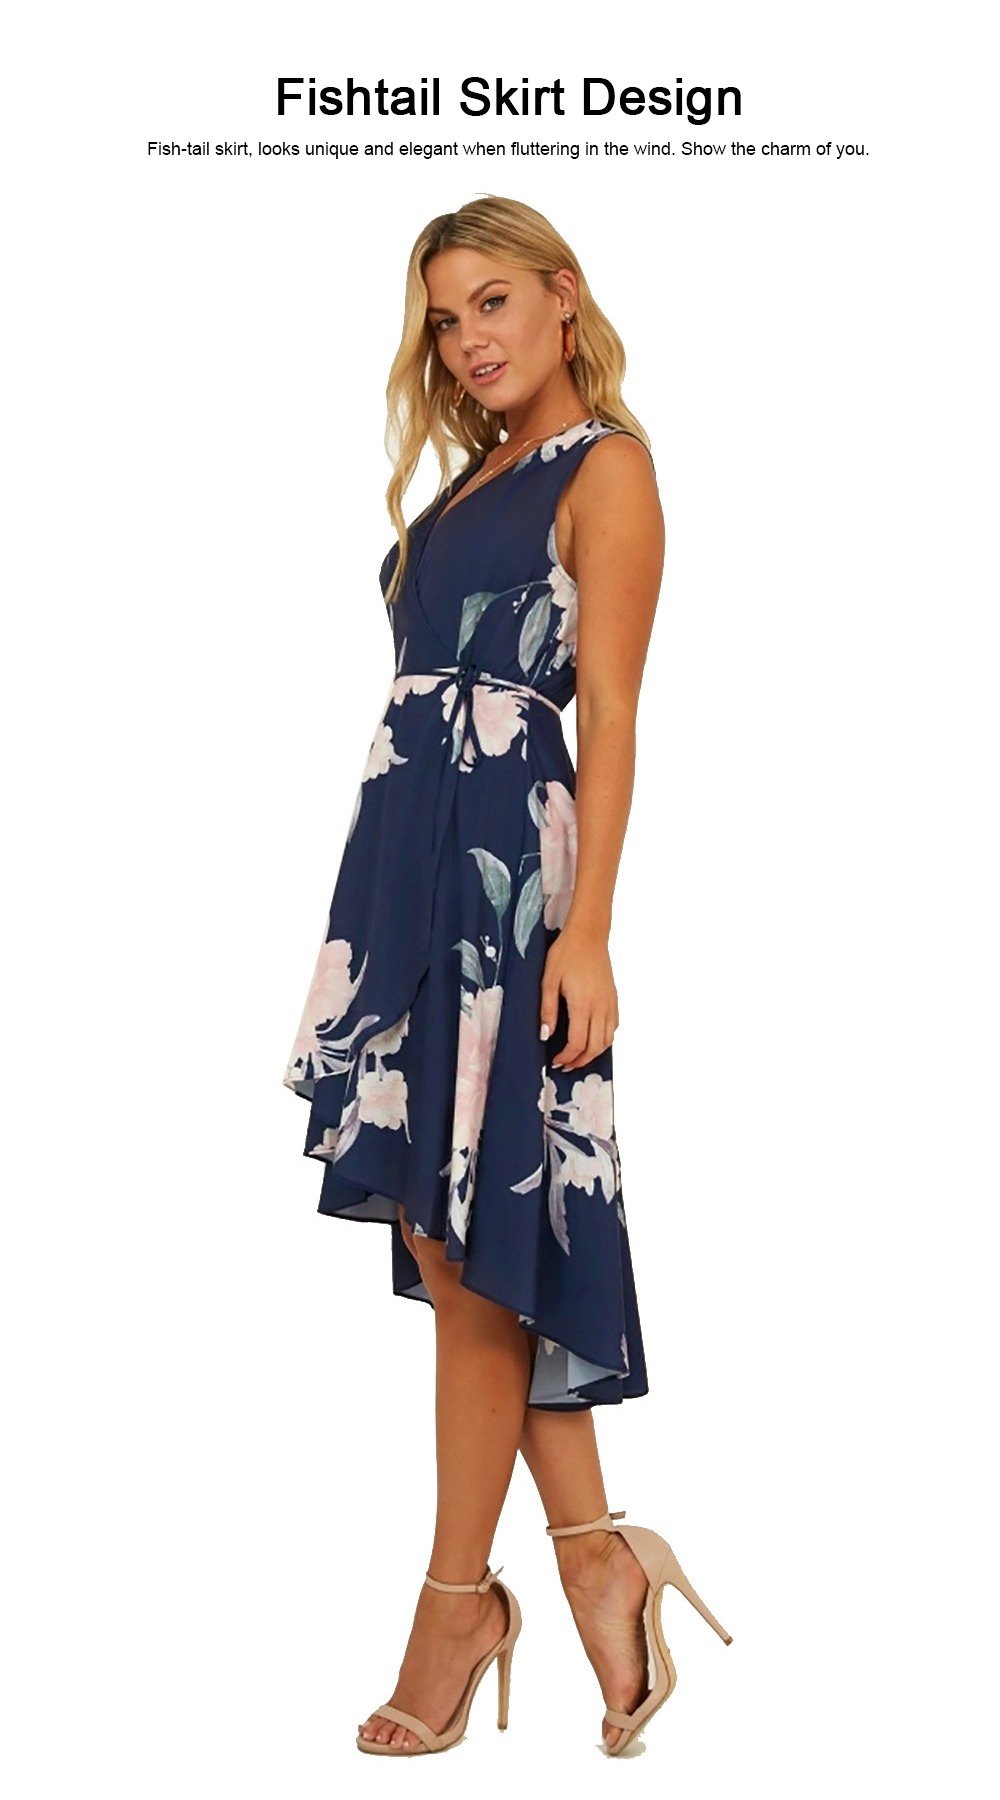 Women V Neck Beach Dress, Ruffle Fishtail Party Dress for Women Leisure Appointment 2019 3